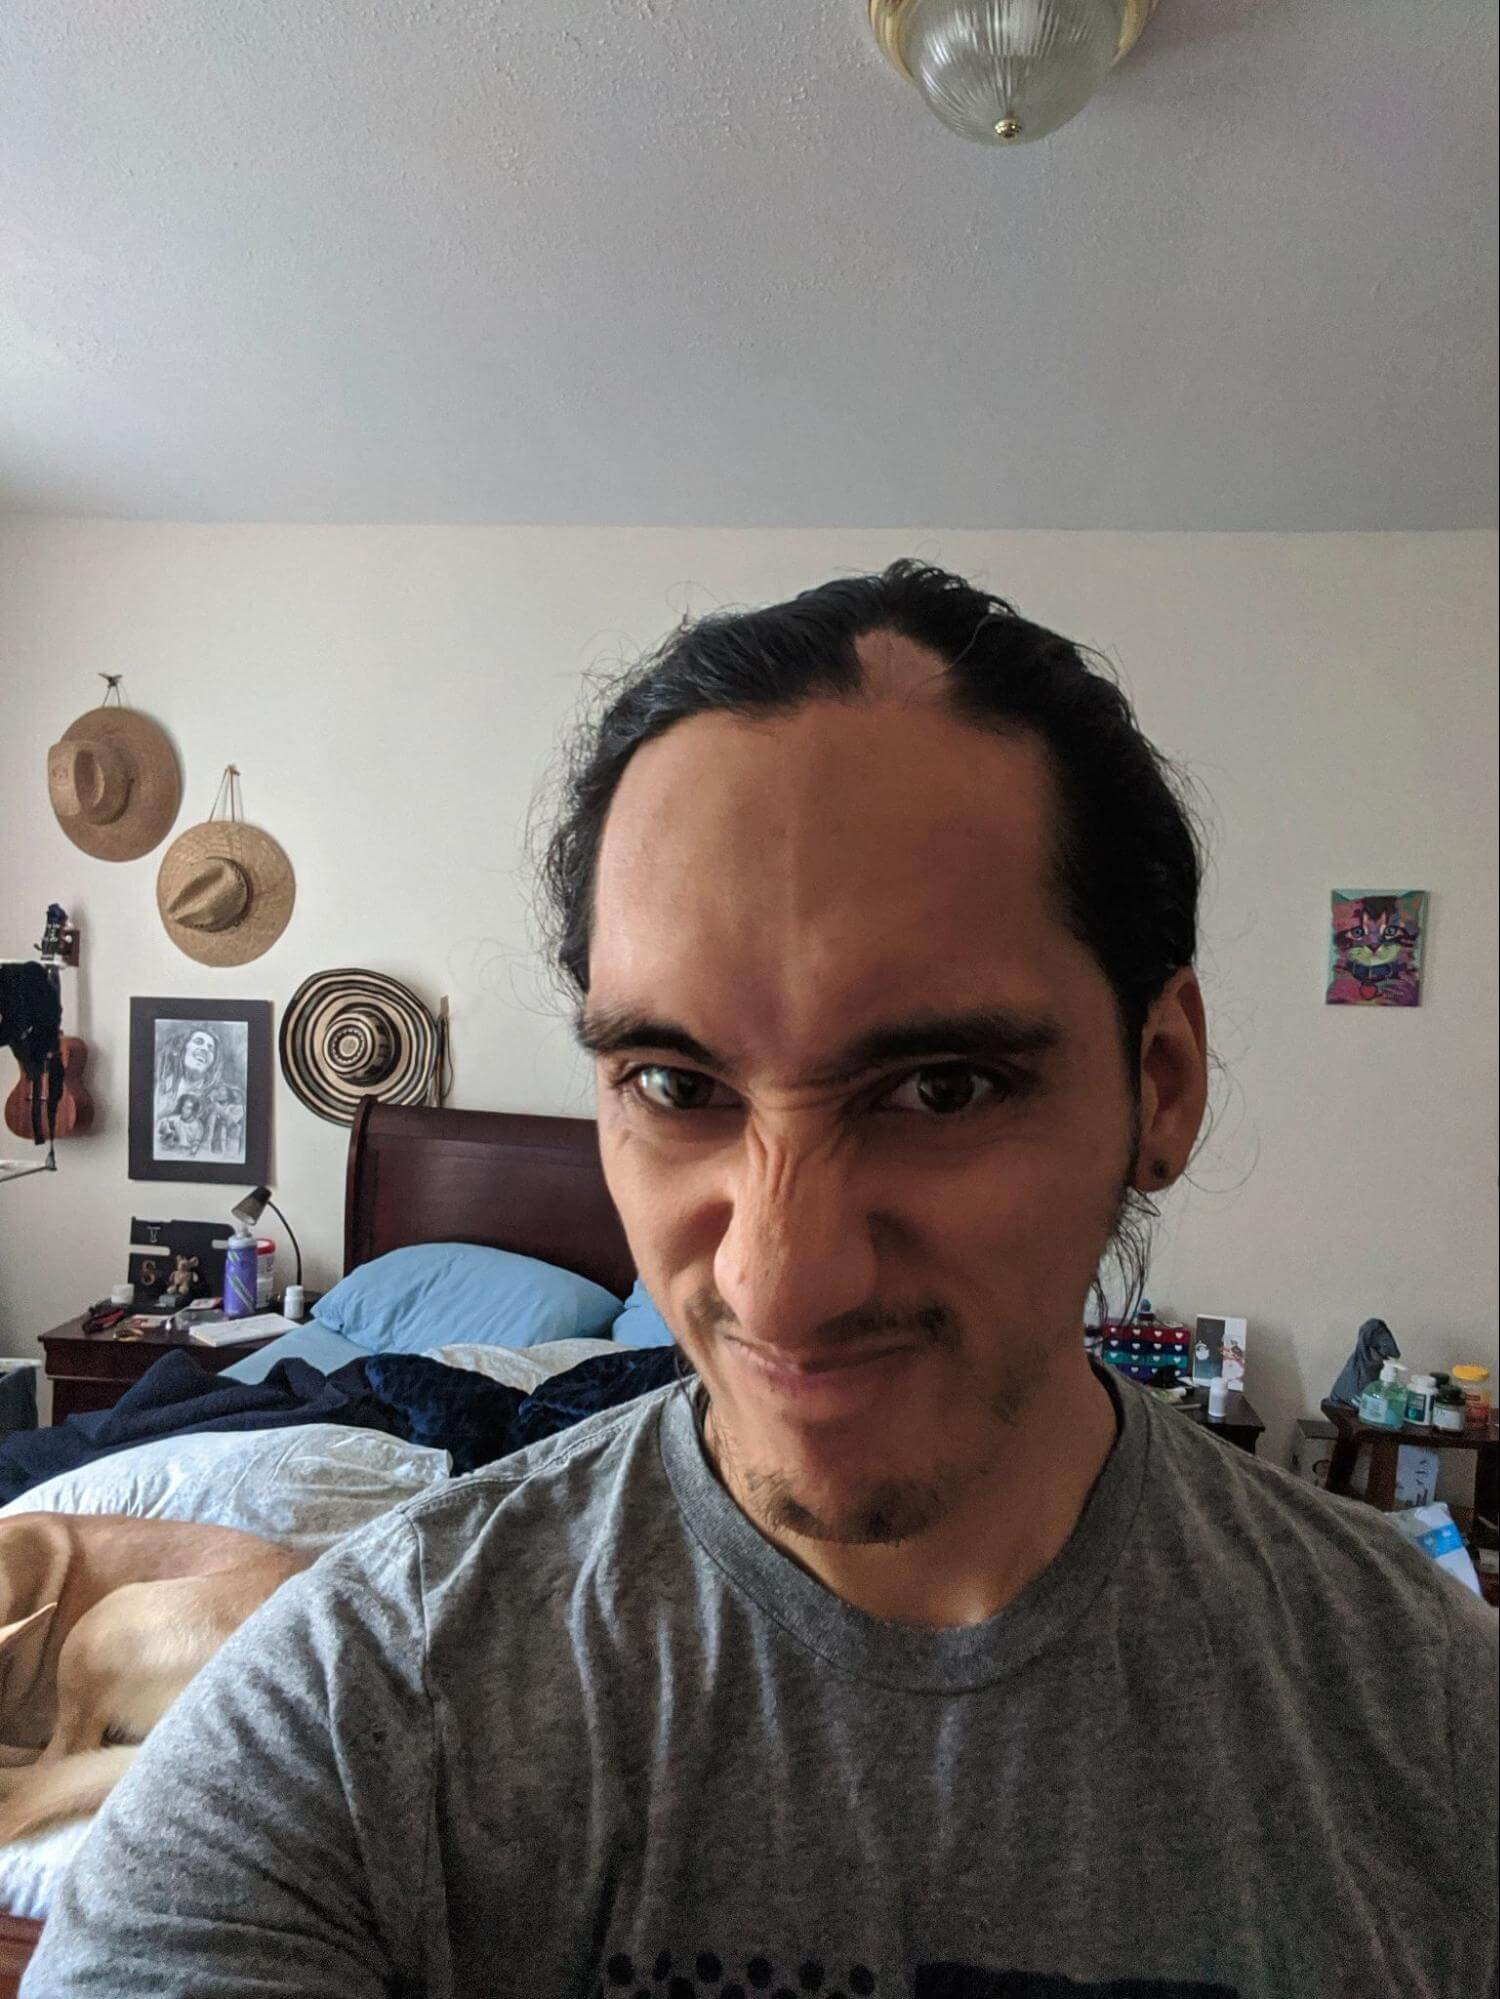 Steven grimacing at a patch of hair loss from alopecia